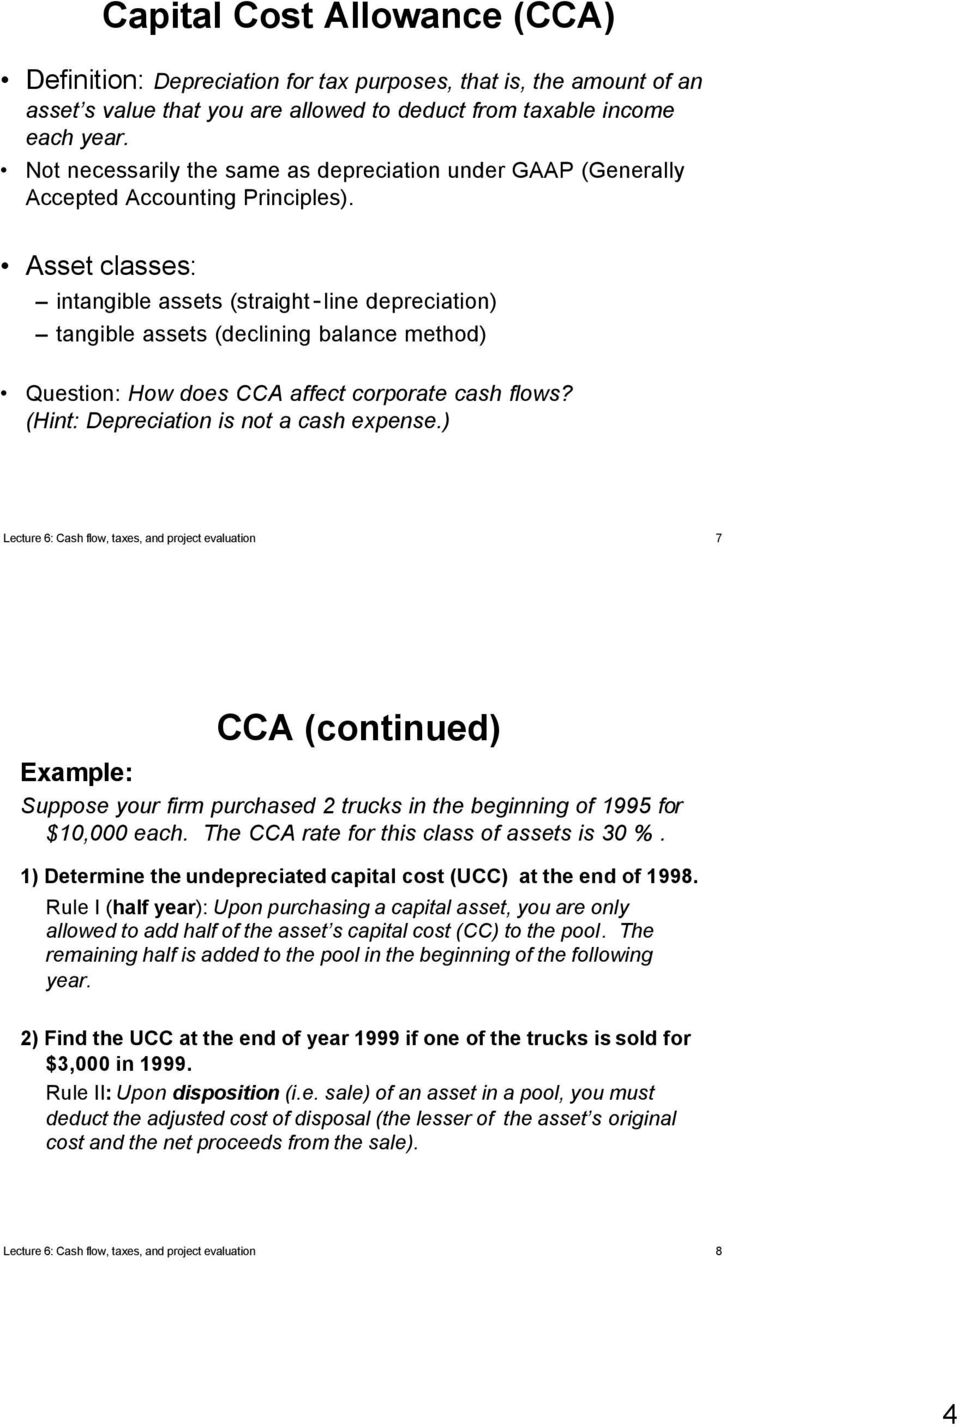 Asset classes: intangible assets (straight-line depreciation) tangible assets (declining balance method) Question: How does CCA affect corporate cash flows? (Hint: Depreciation is not a cash expense.